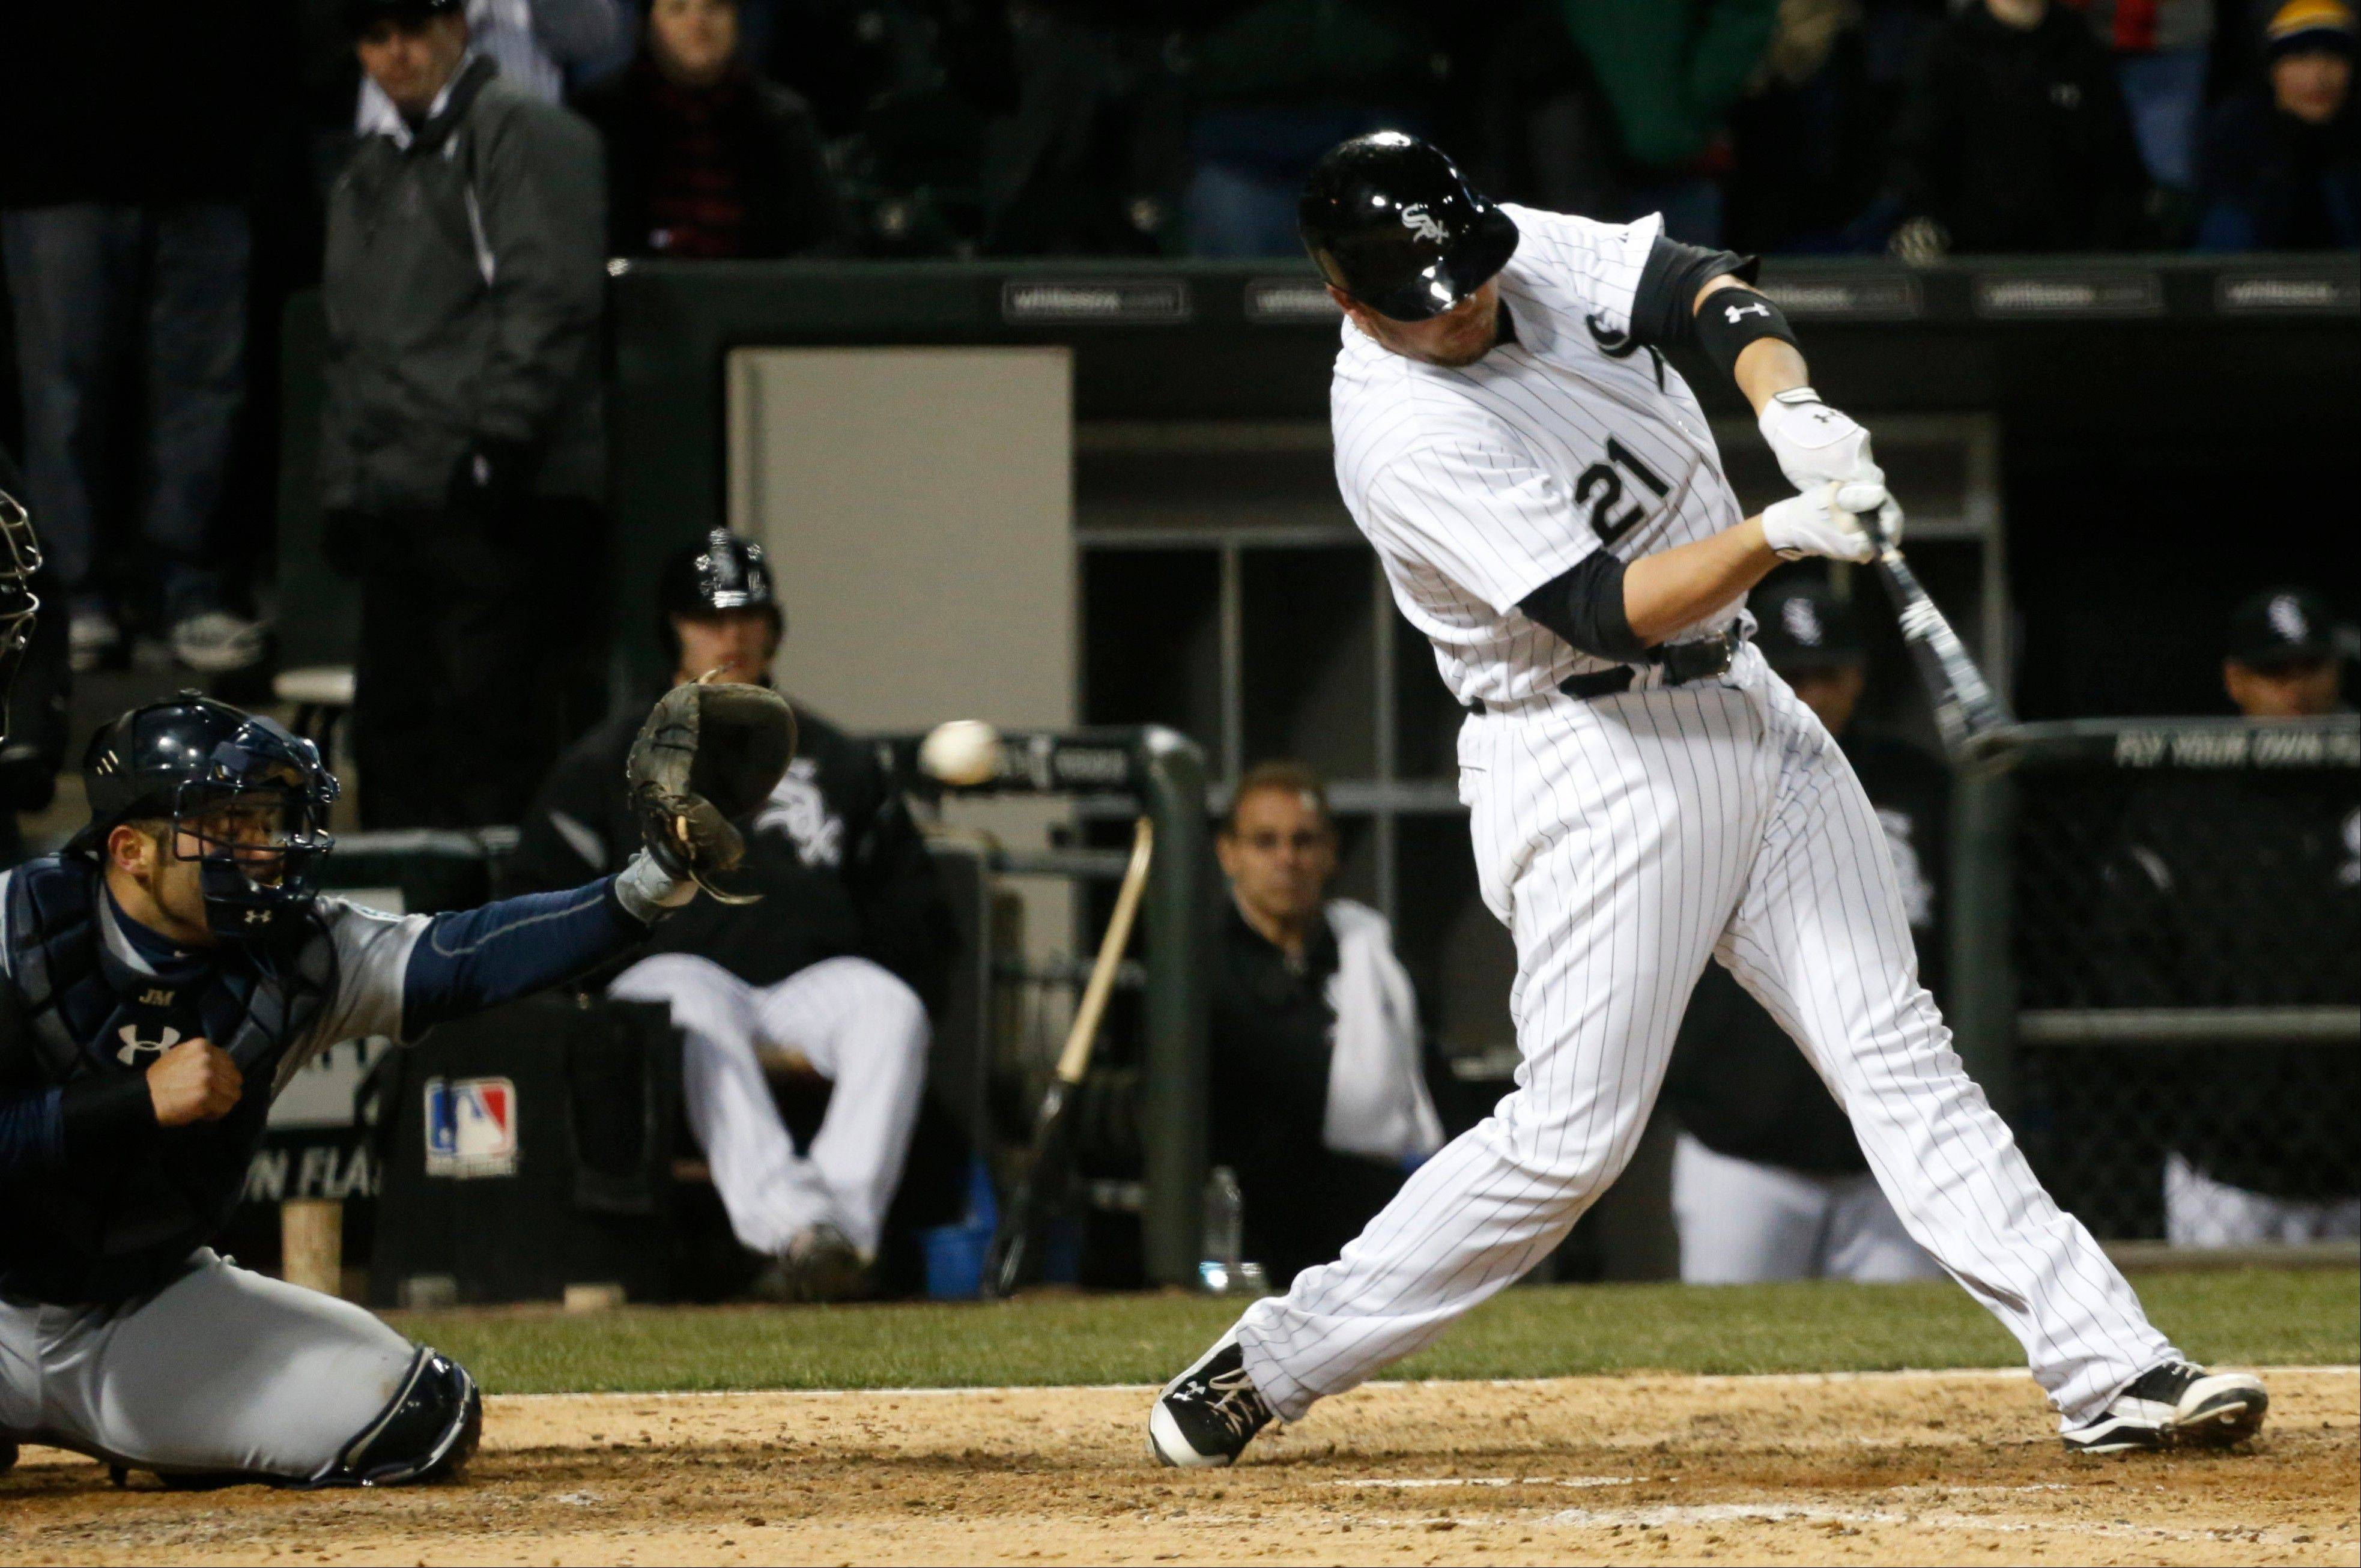 Tyler Flowers strikes out swinging with the bases loaded to end the White Sox' 8-7 loss to the Mariners on Friday night at U.S. Cellular Field.